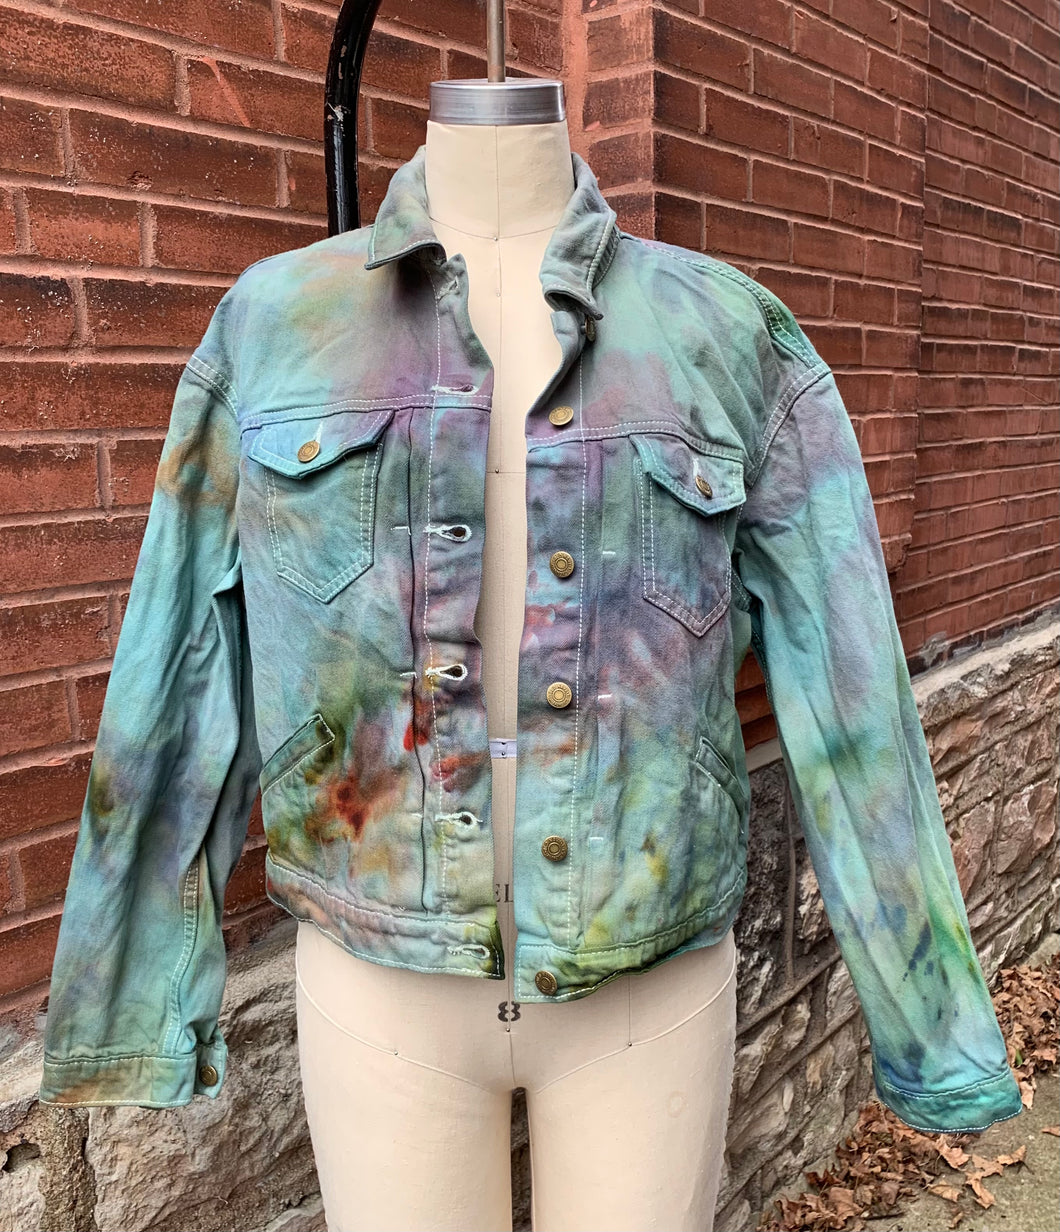 Sennit + Sauvage -IceDyed Denim Jackets for Women